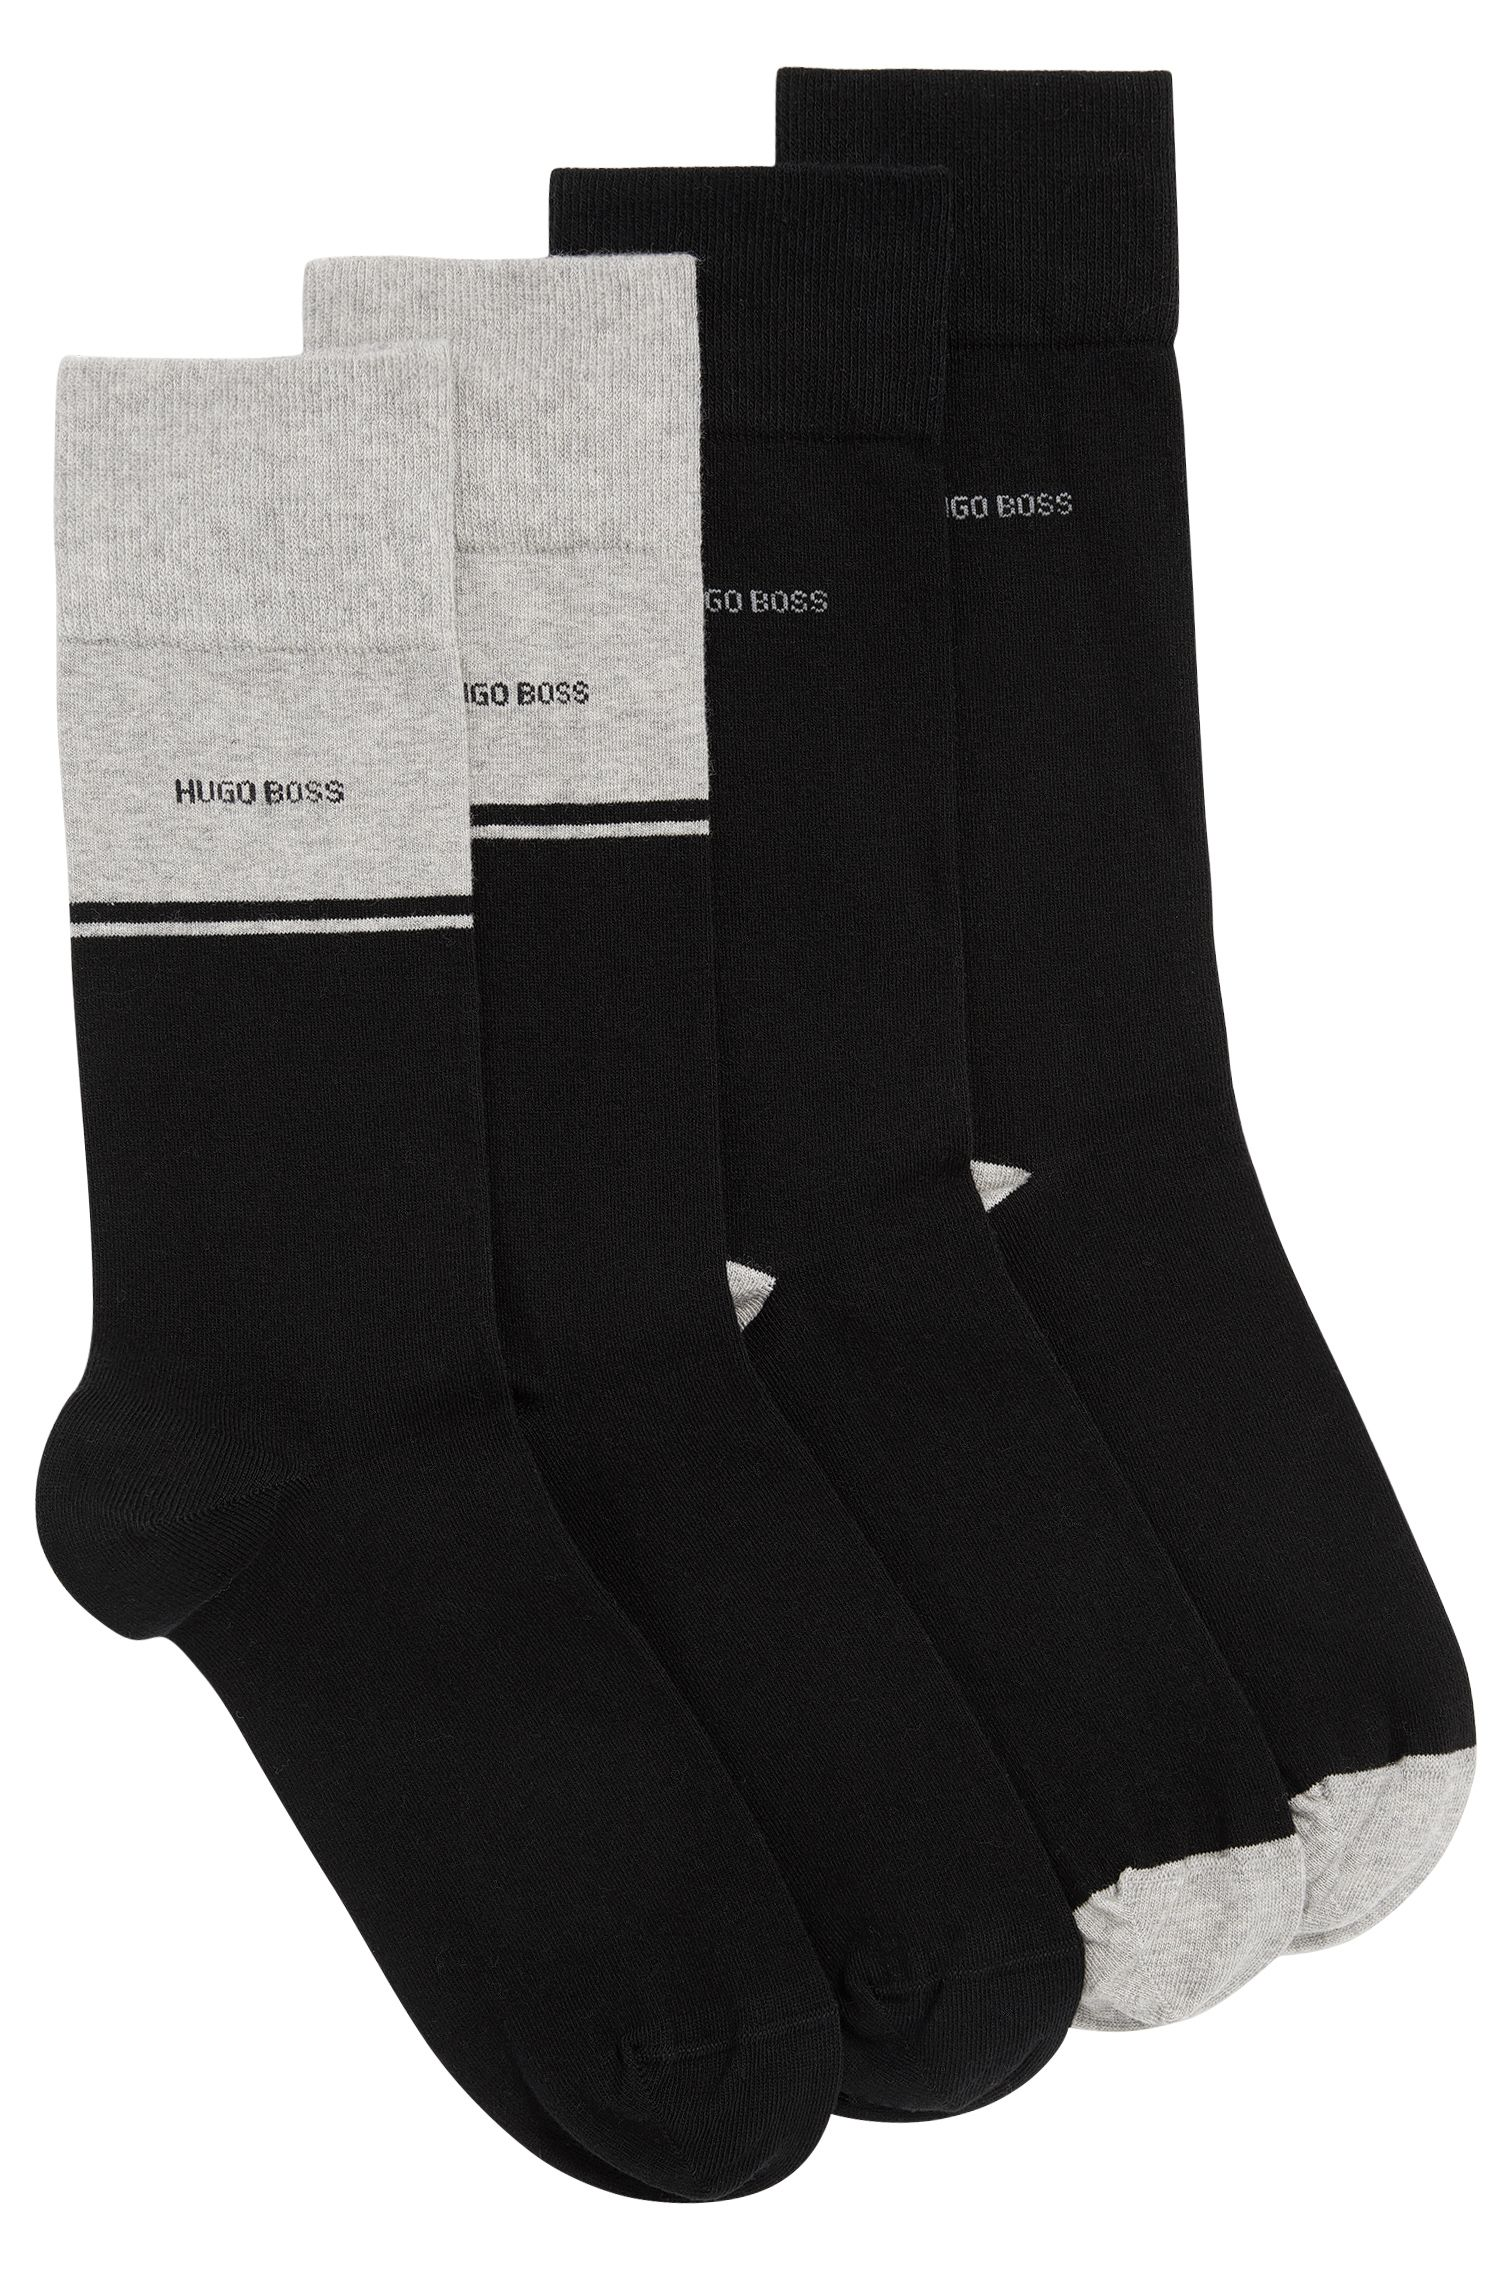 Two-pack of regular-length socks in combed cotton blend